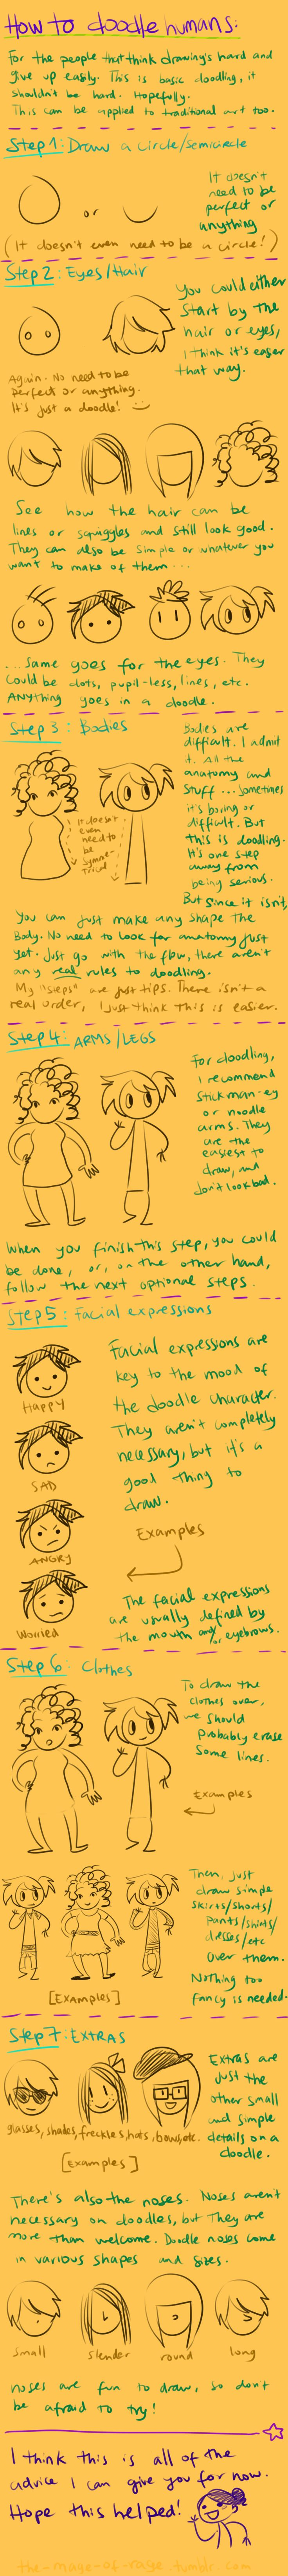 doodling tutorial by Mistakes13.devian... i need to up my doodling skills for the kids.